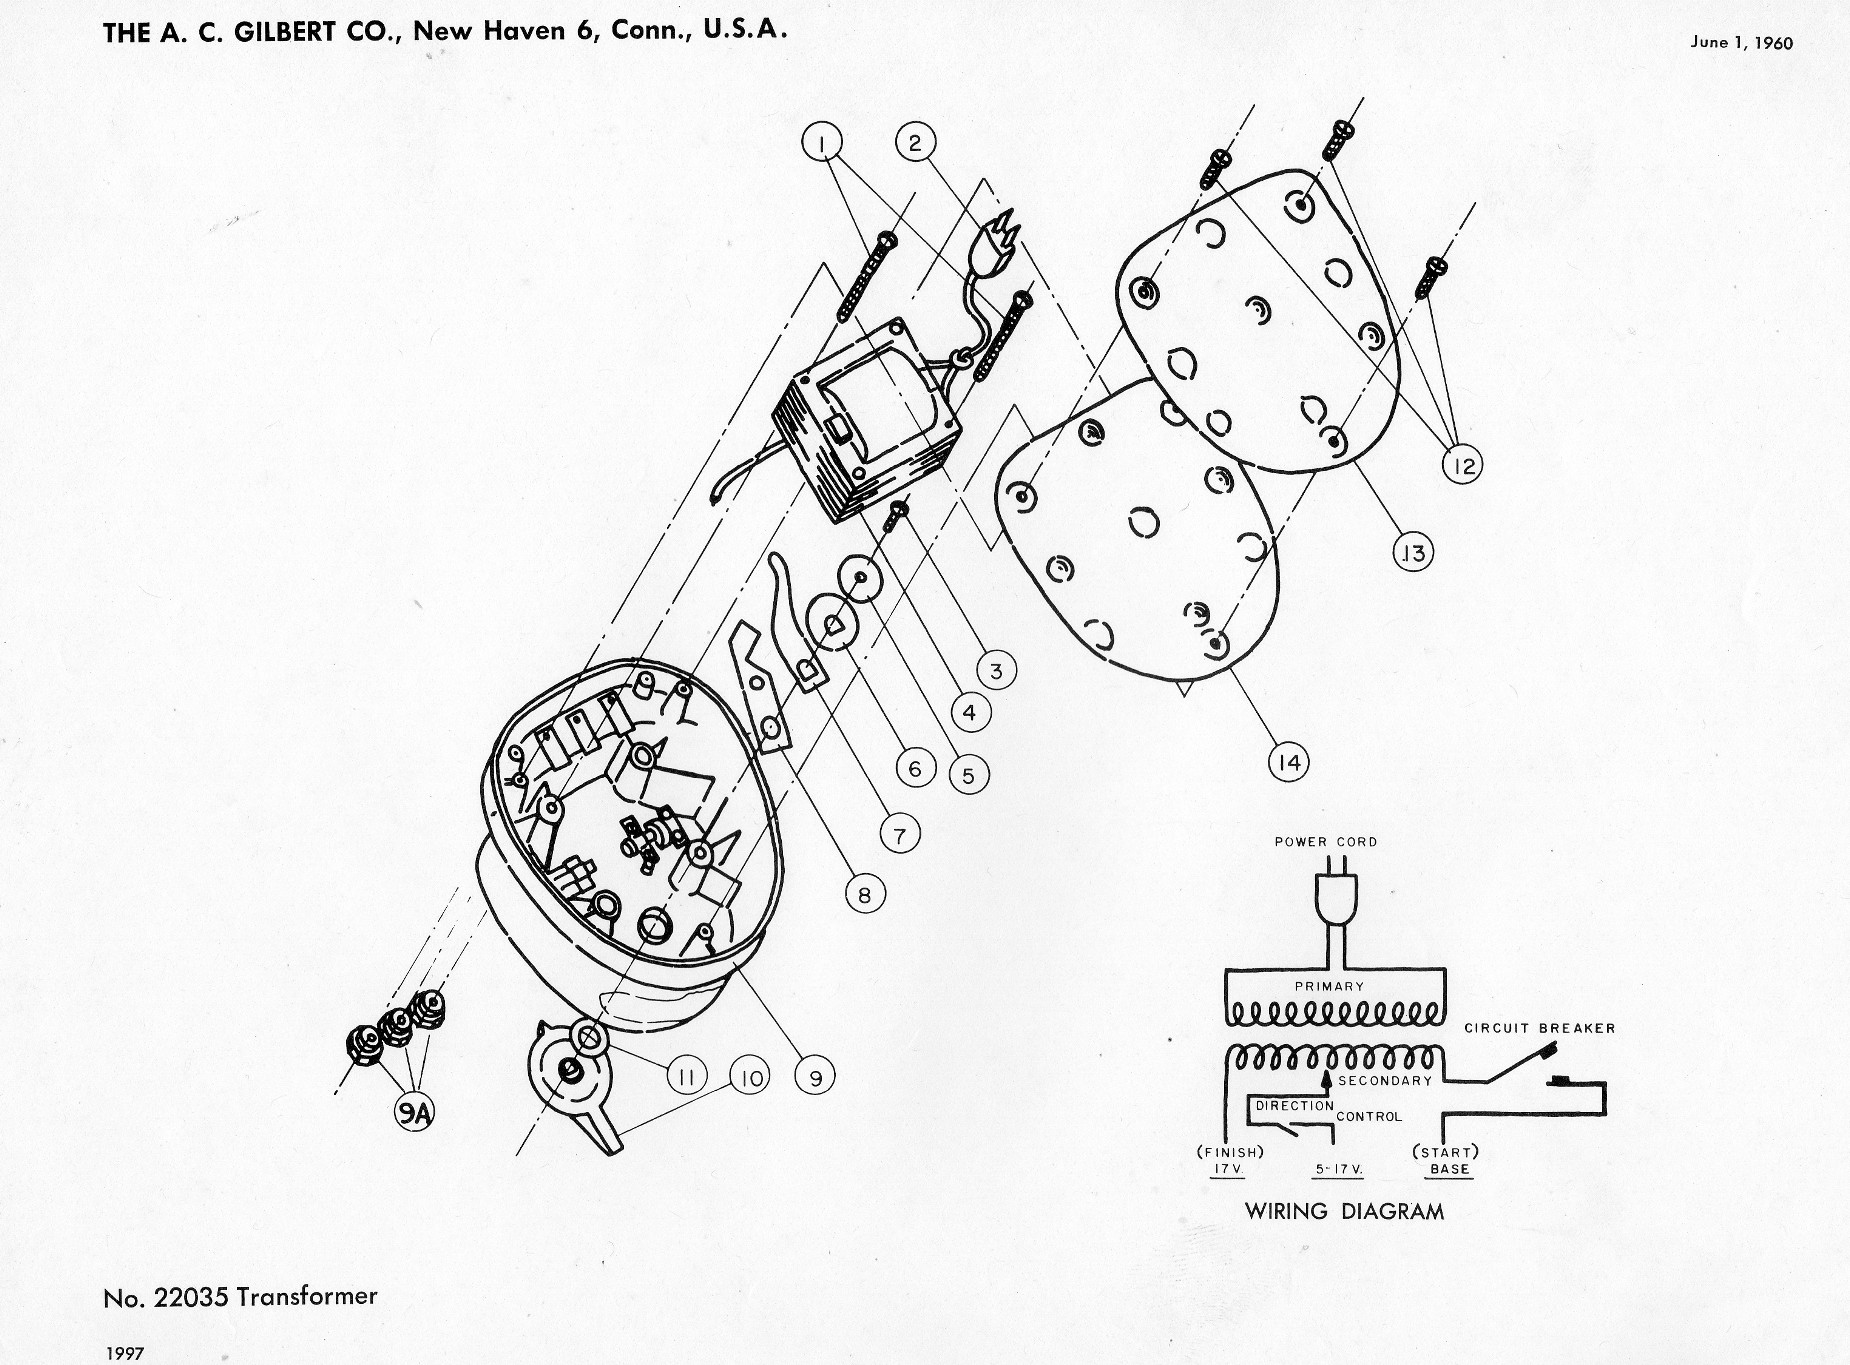 American Flyer Transformer 22035 Diagram